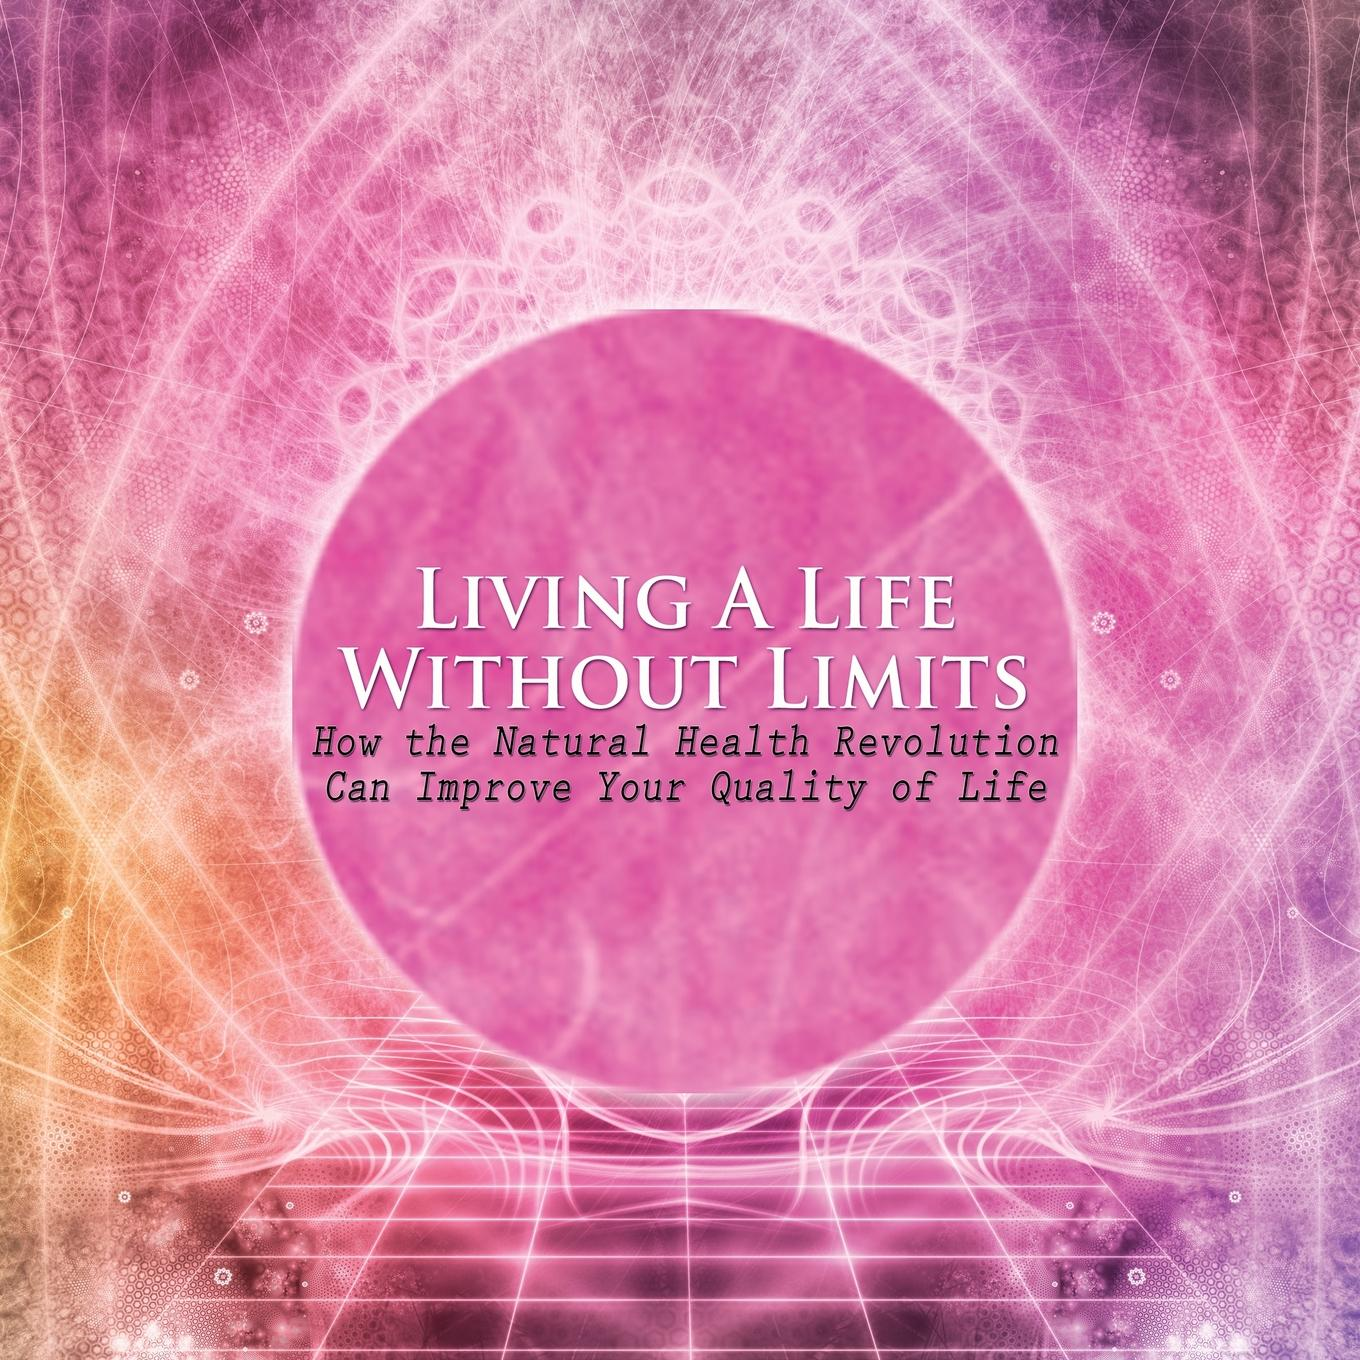 Living a Life Without Limits: How the Natural Health Revolution Can Improve Your Quality of Life (Paperback)